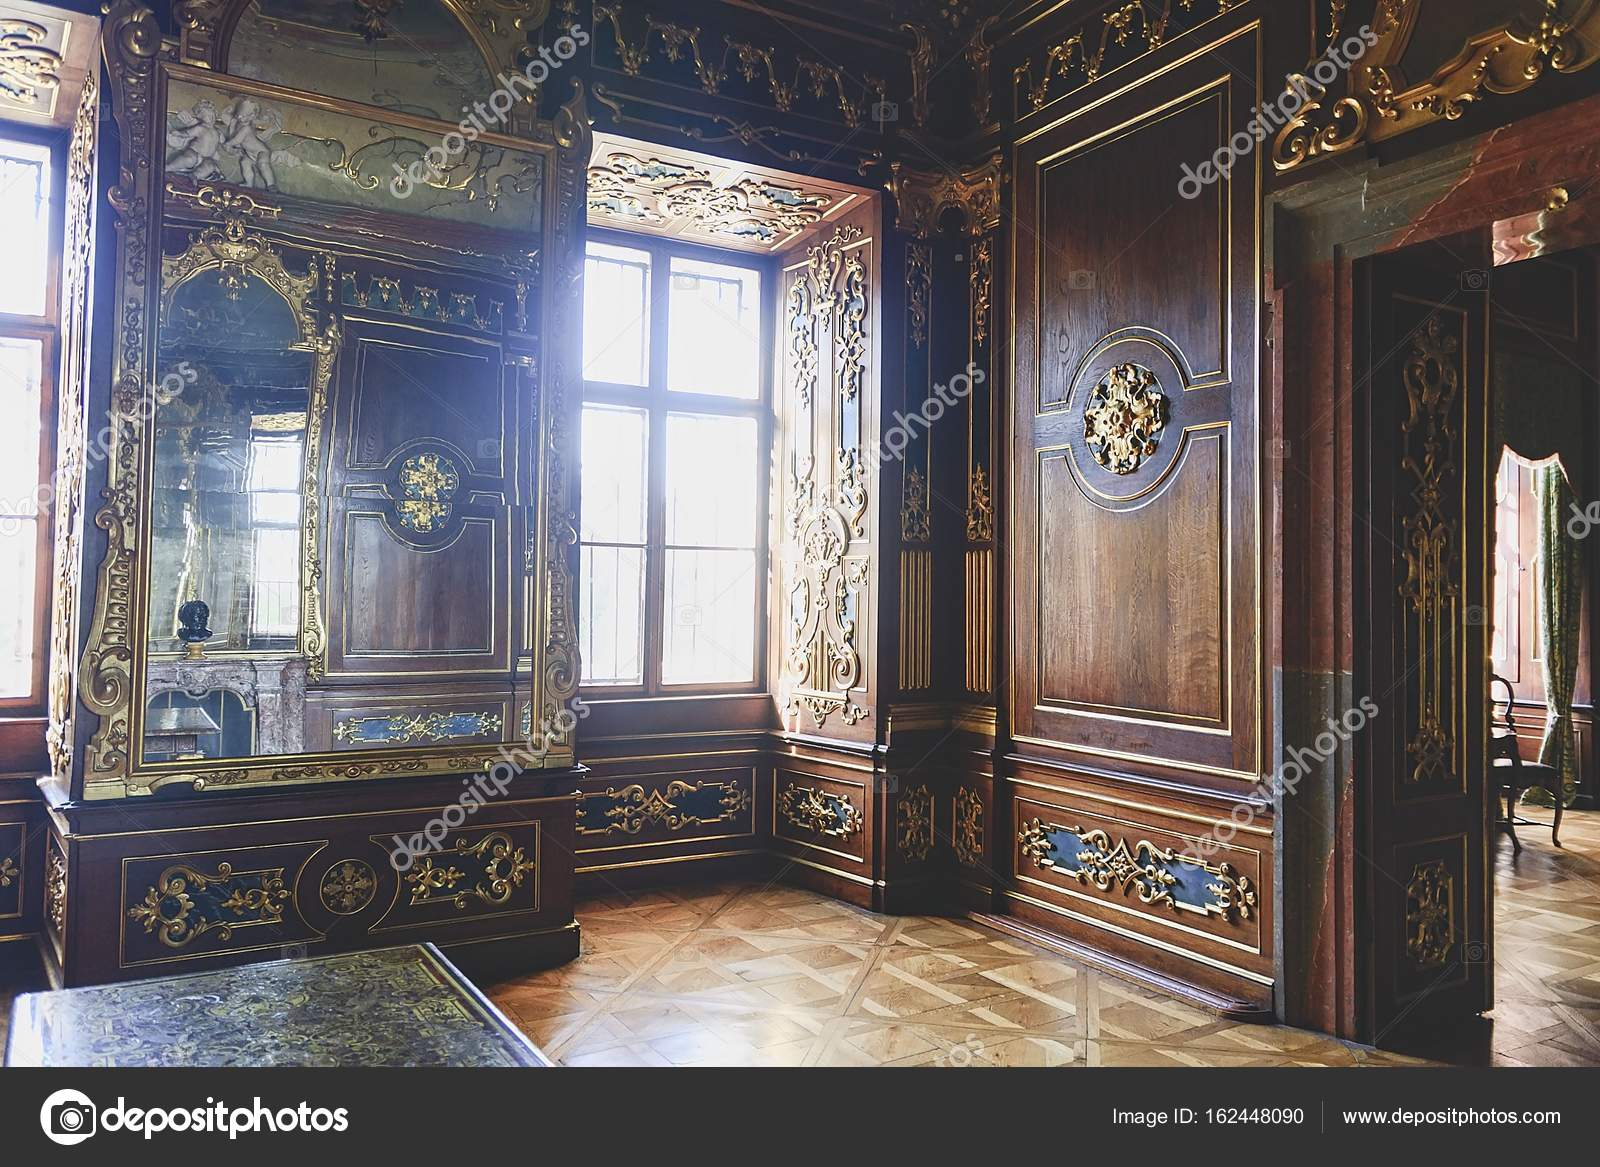 Valtice Castle In Czech Republic National Cultural Monument Originally A Gothic And Former